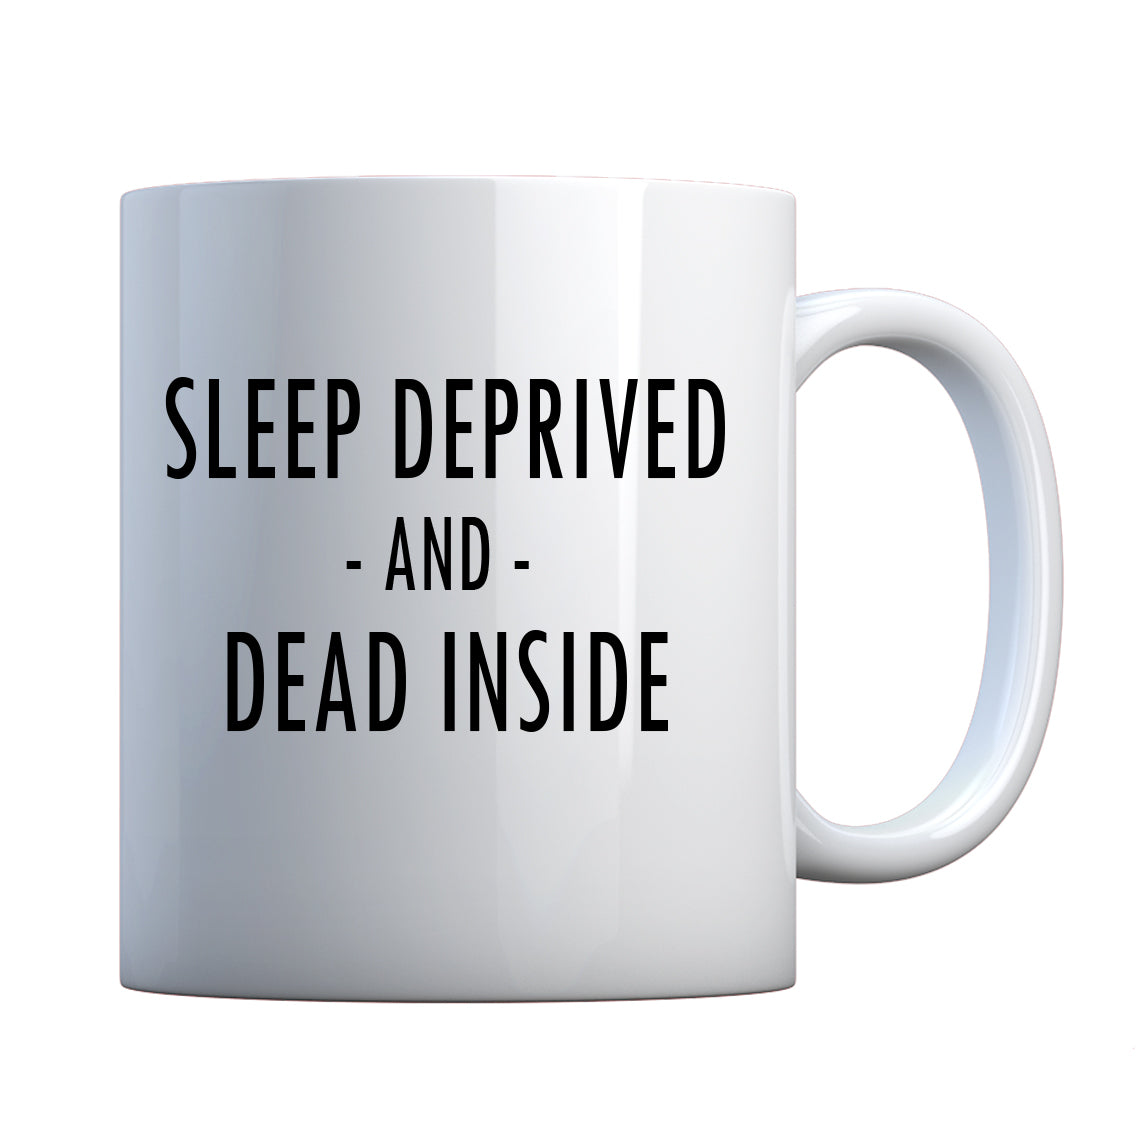 Mug Sleep Deprived and Dead Inside Ceramic Gift Mug